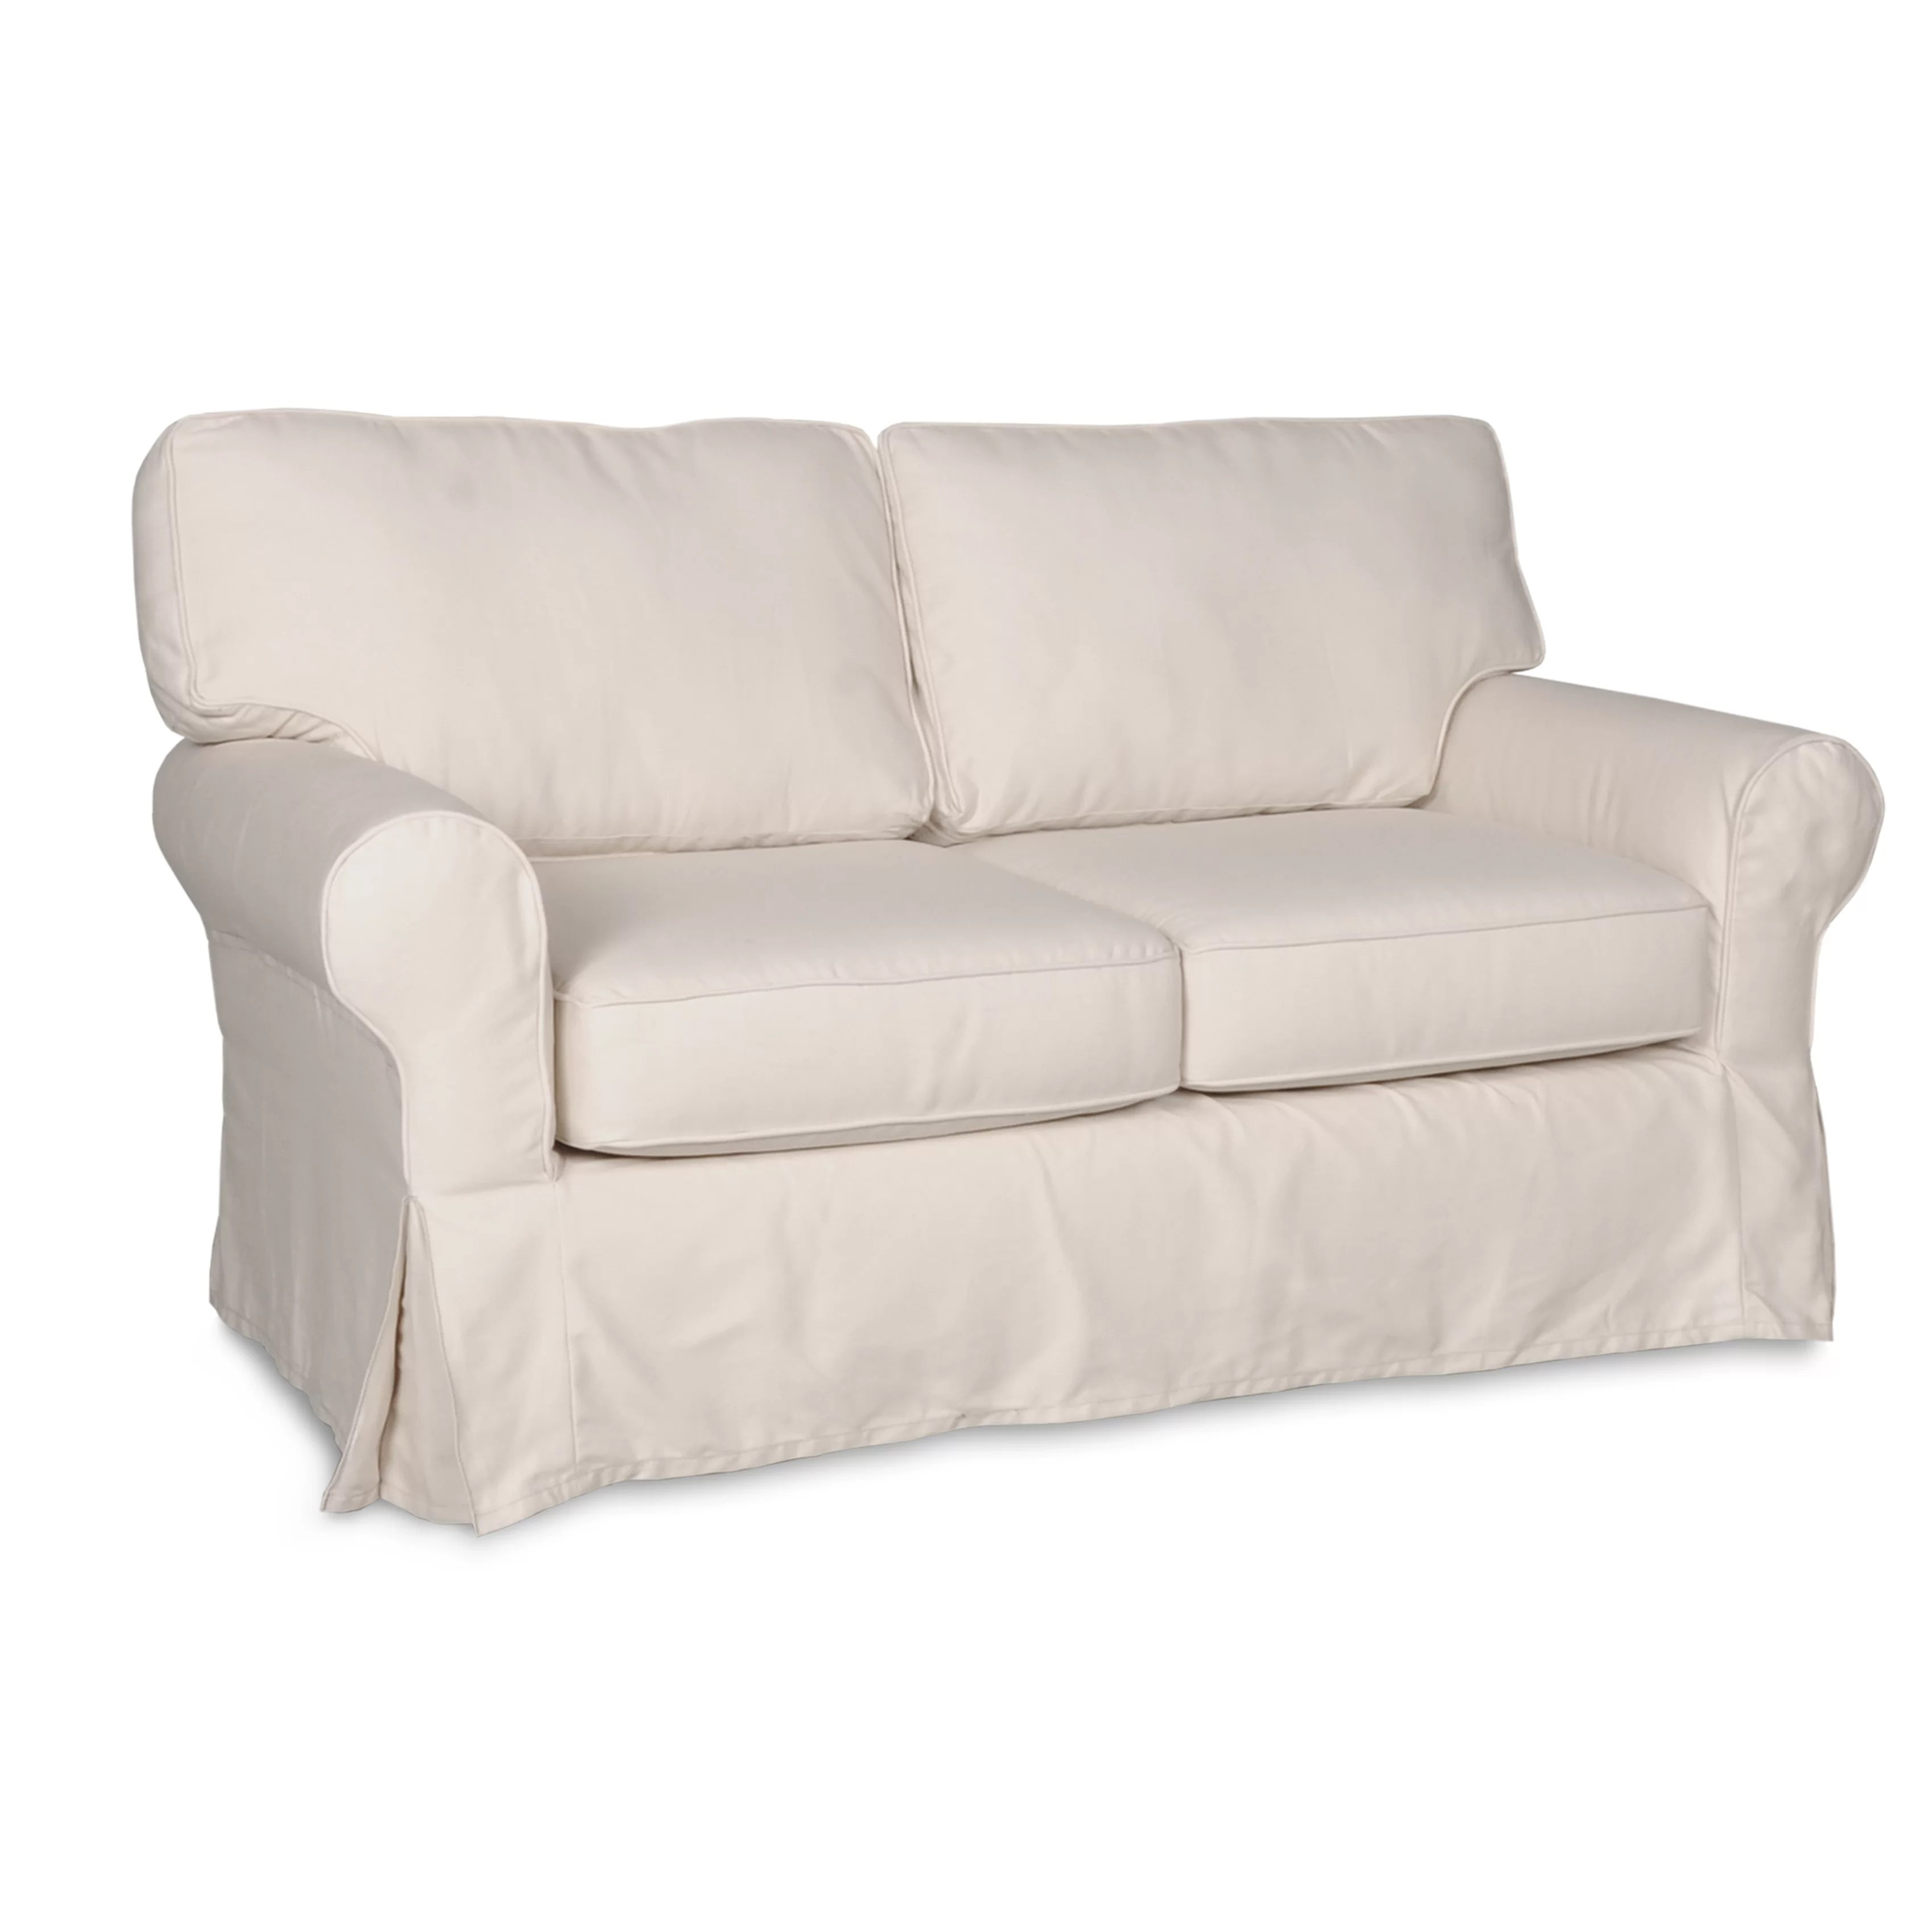 wayfair sofa covers cheap black rattan corner darby home co loveseat slipcover and reviews